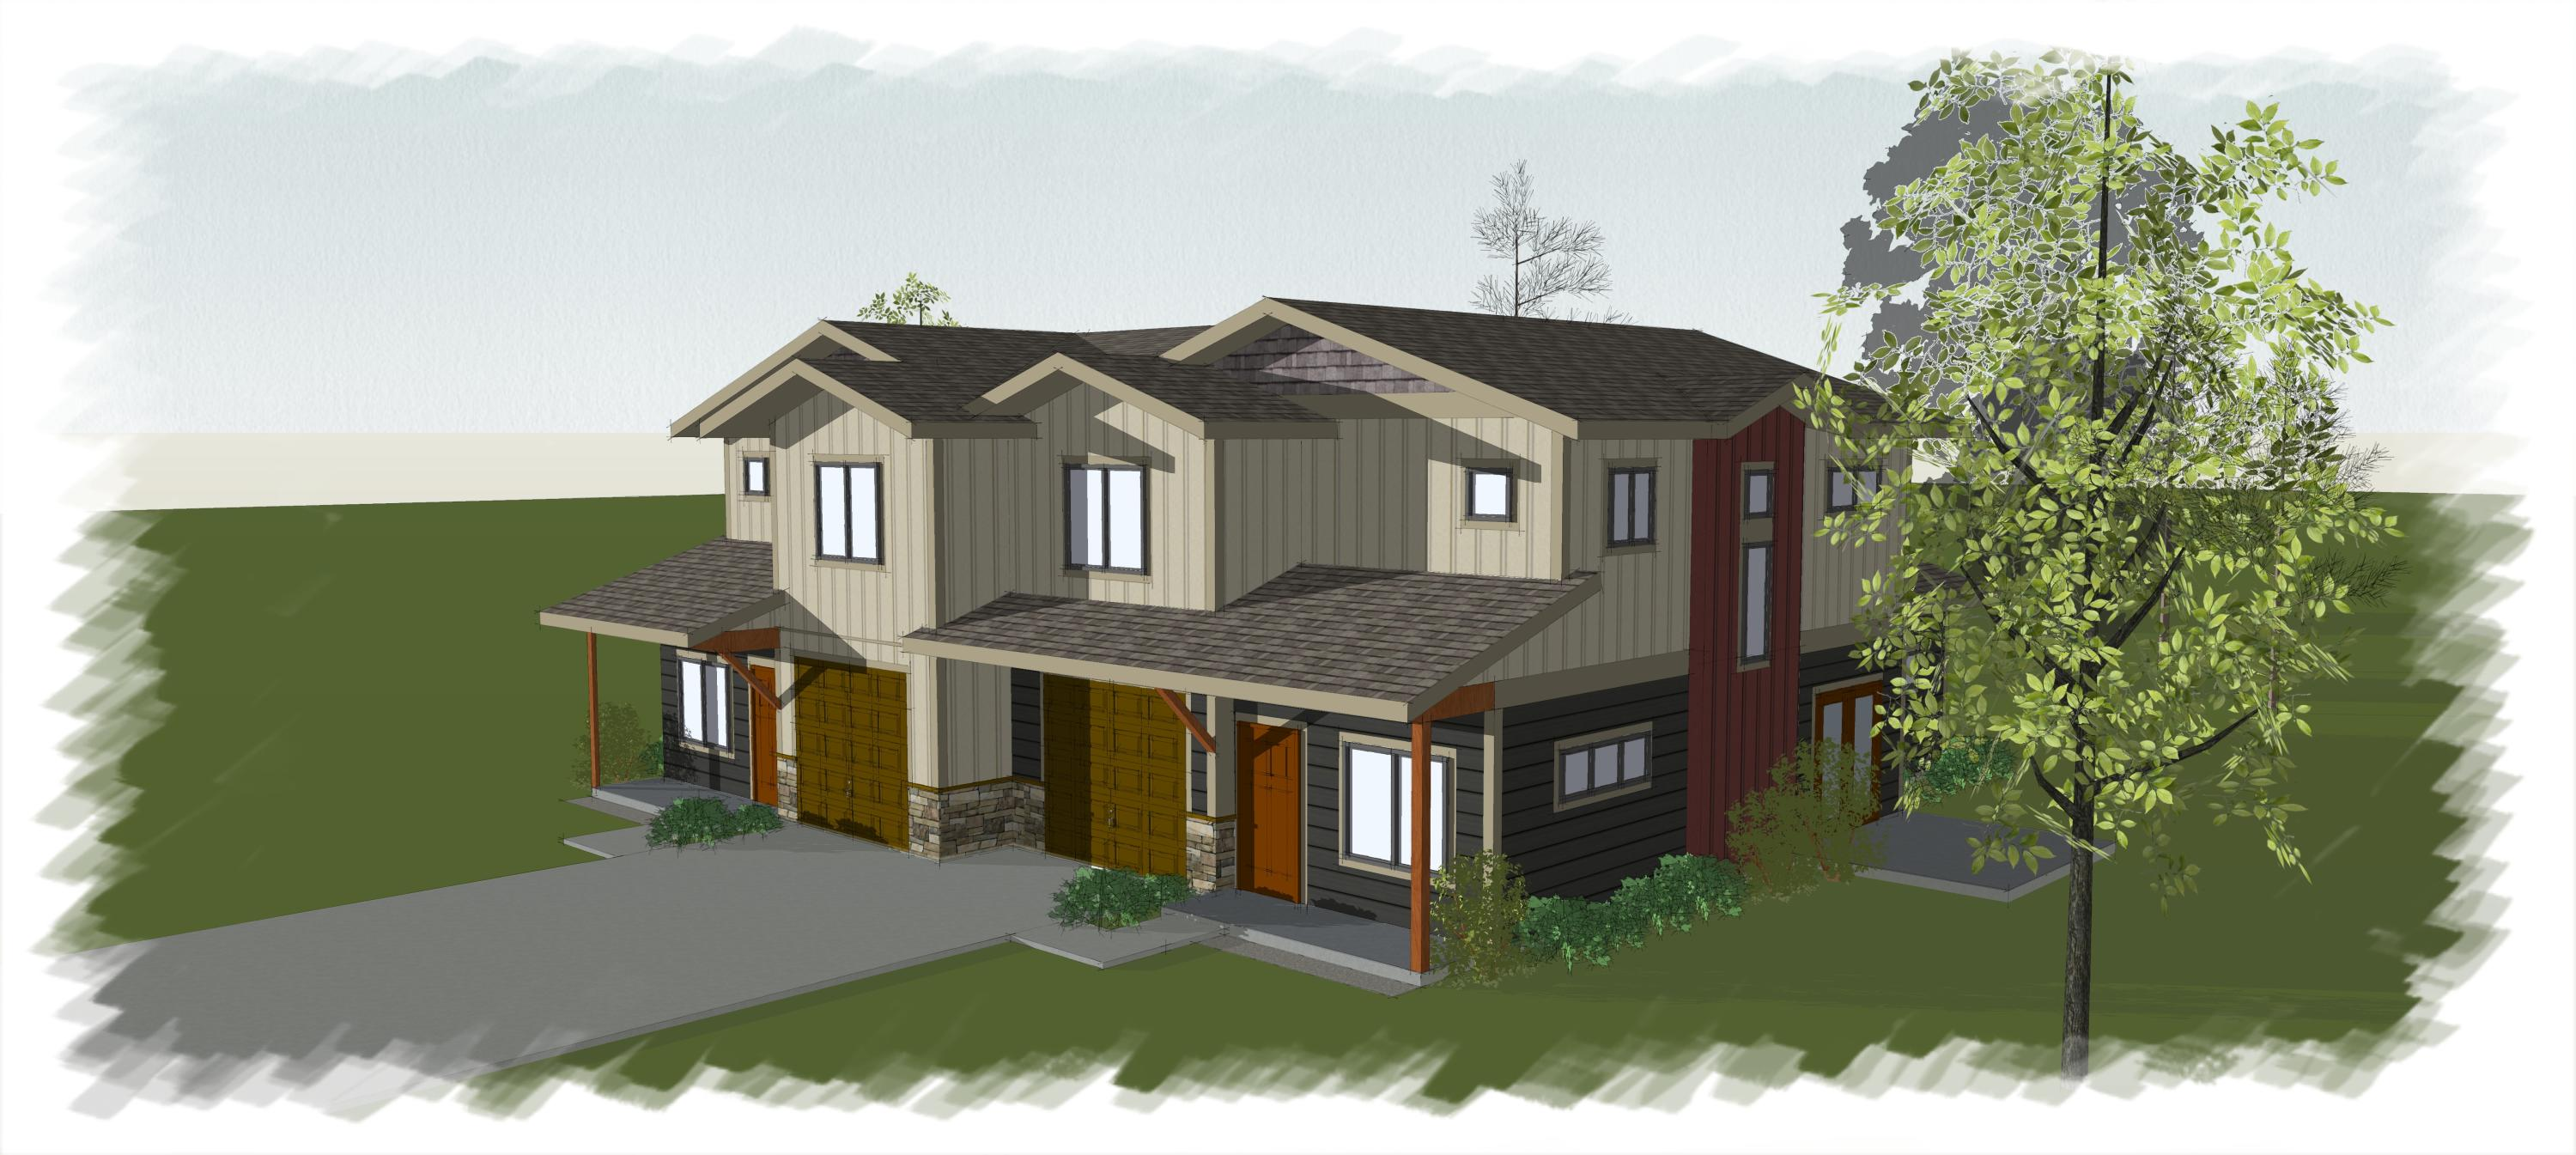 Property Image #3 for MLS #21807650